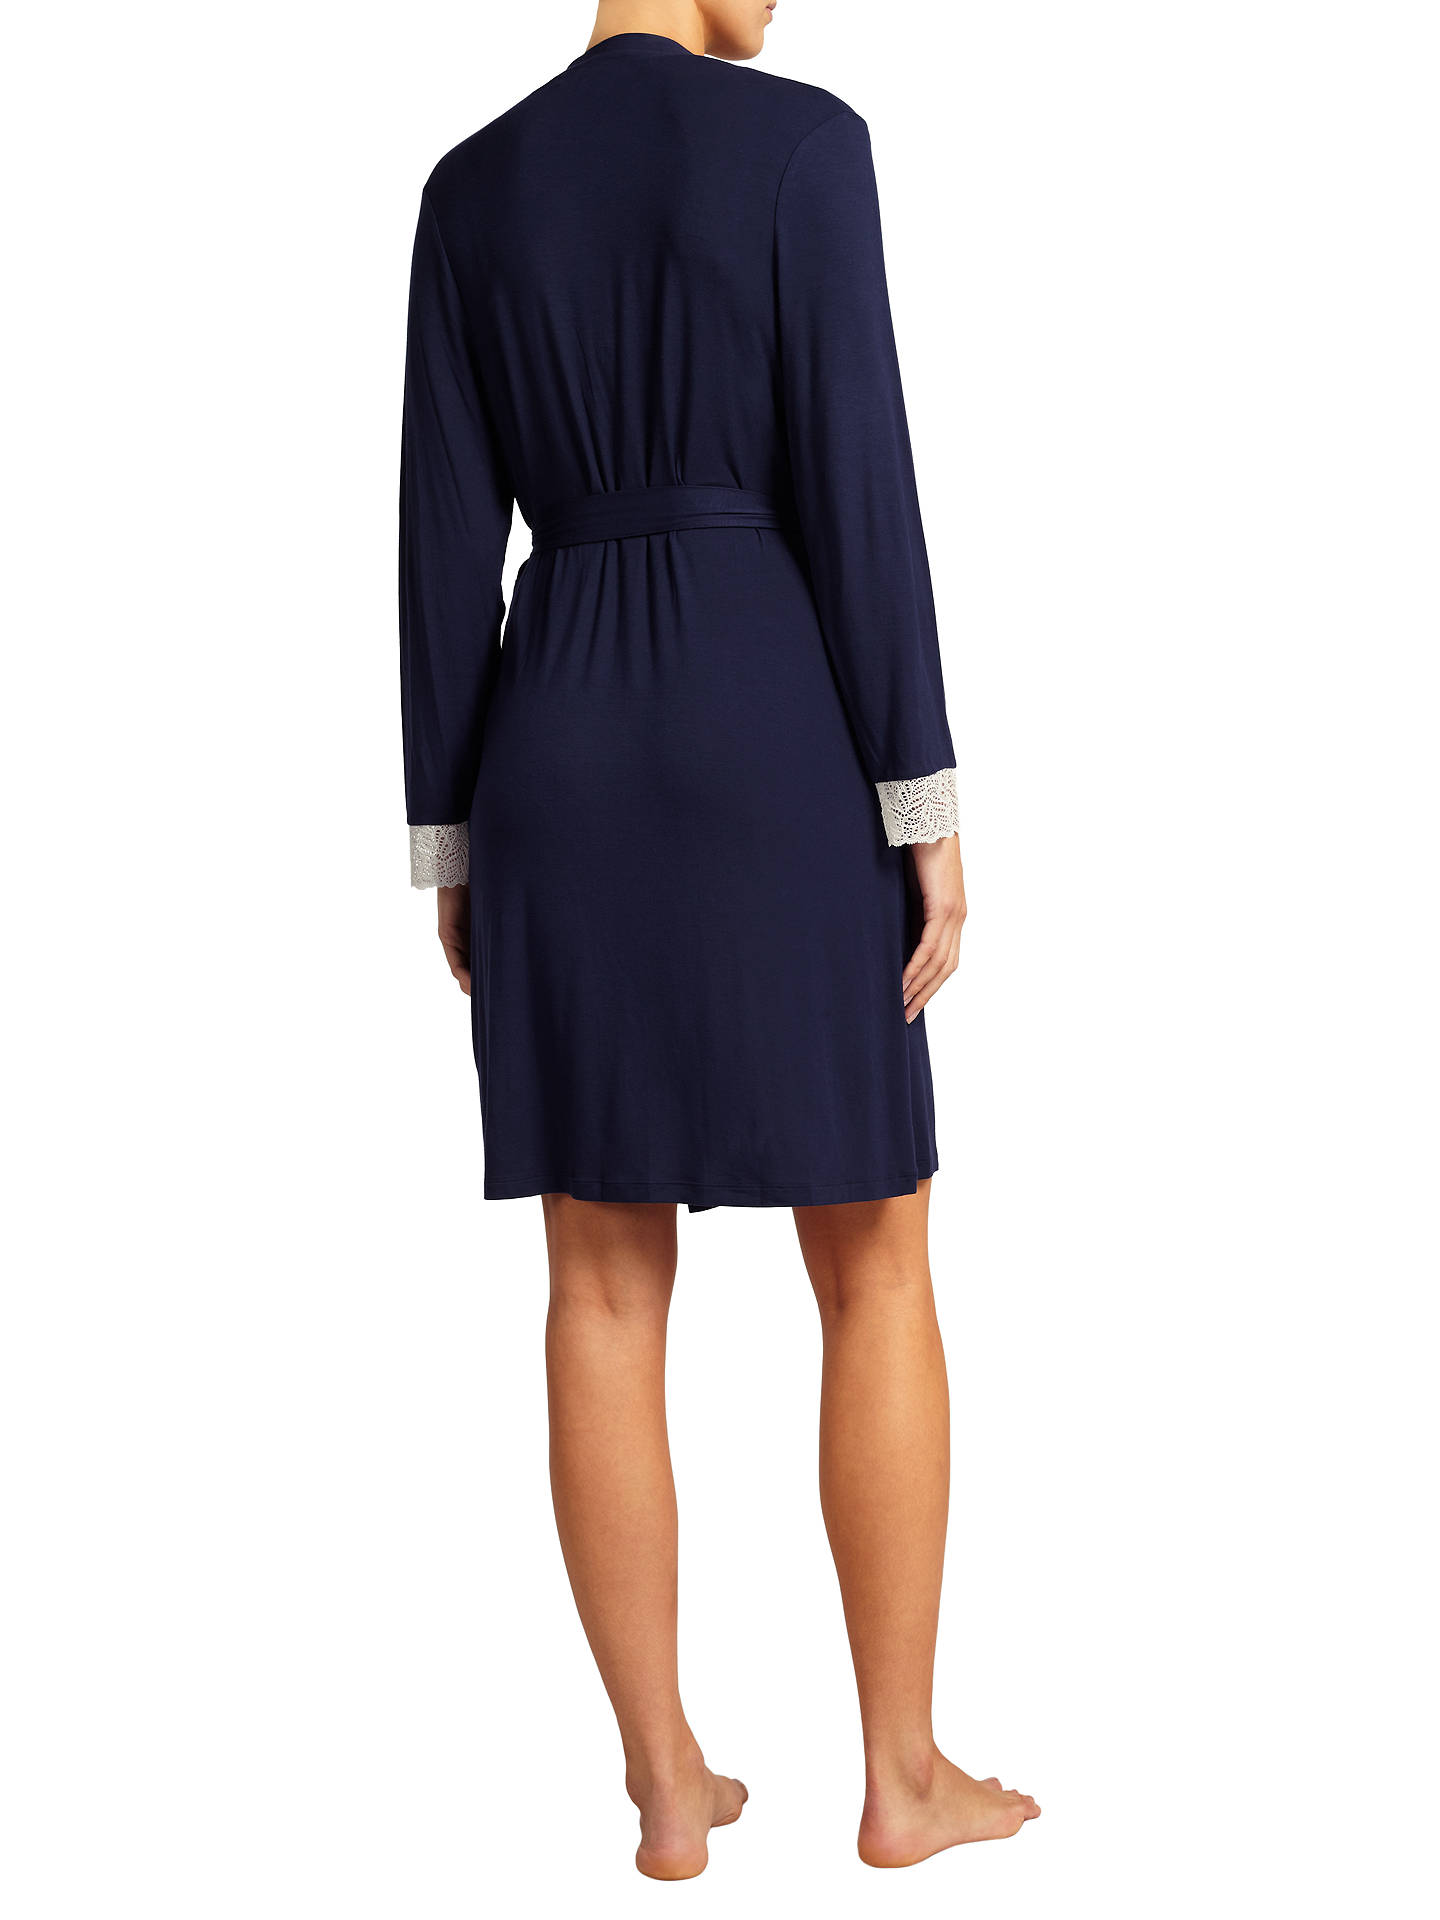 BuyJohn Lewis & Partners Alicia Jersey Robe, Navy, S Online at johnlewis.com